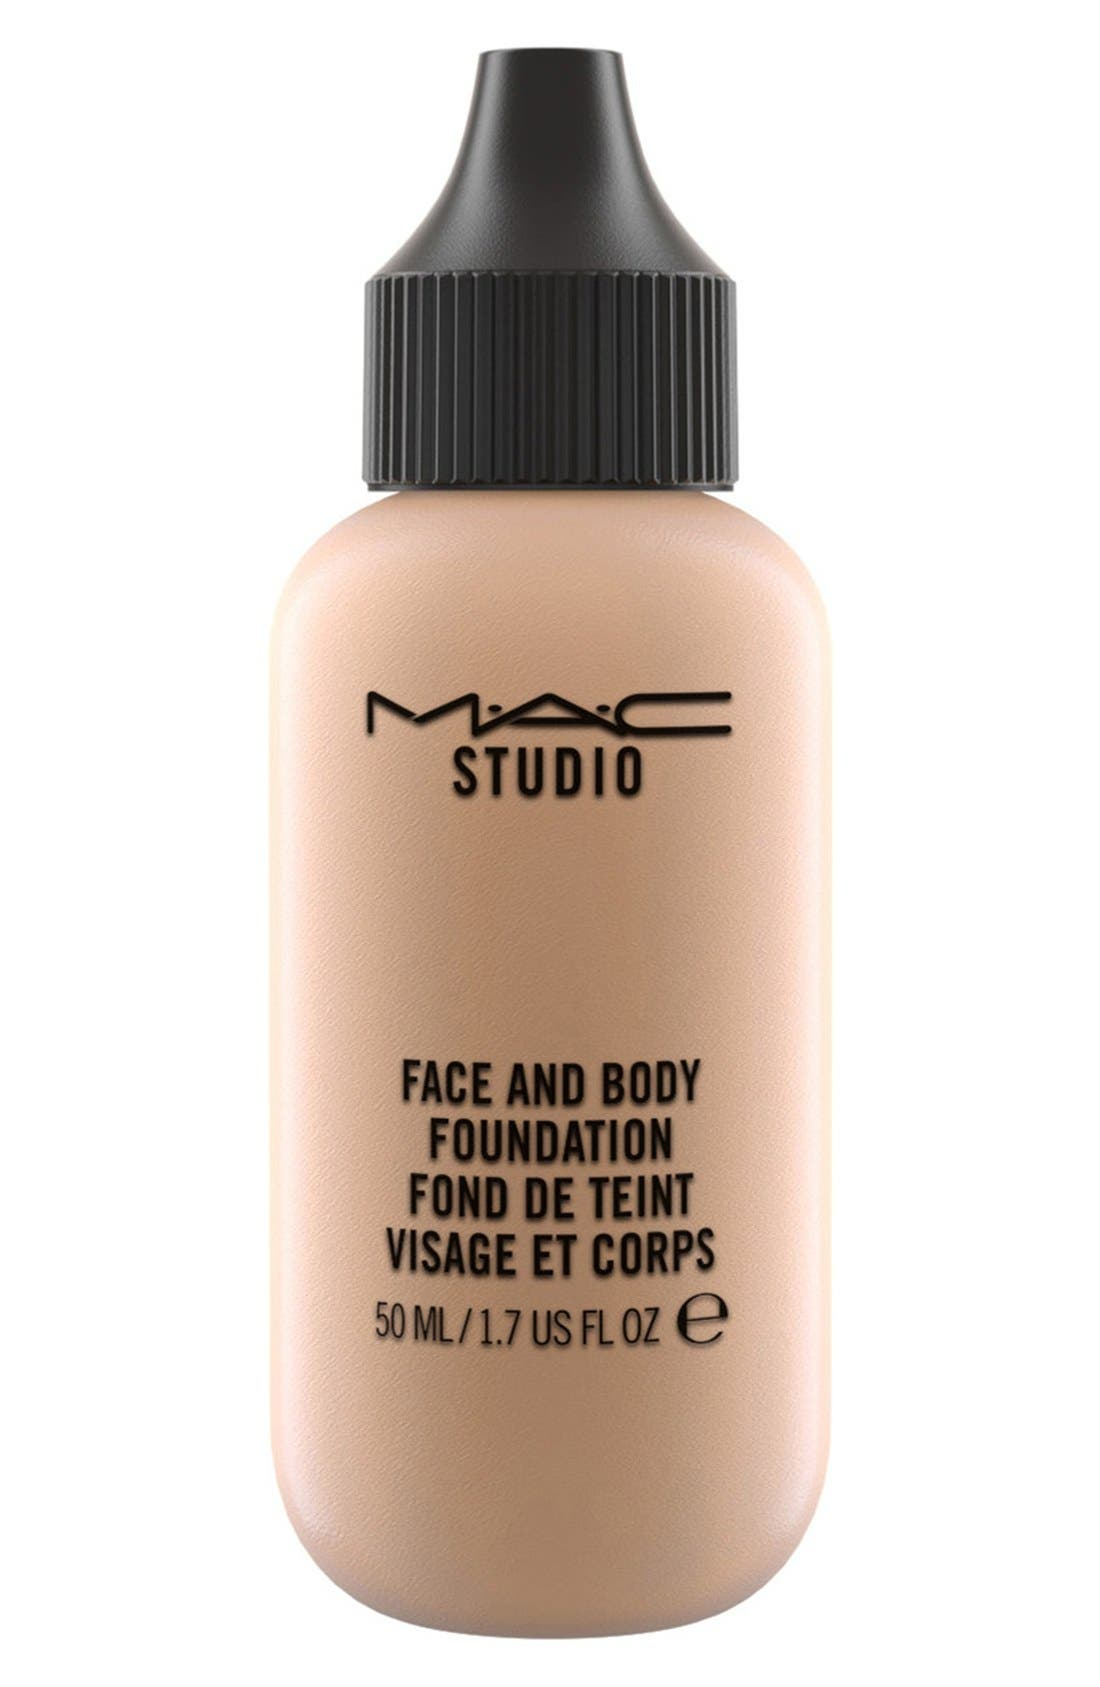 What it is: A comfortable, lightweight foundation that delivers a natural satin finish. Who it\\\'s for: Ideal for those who want low-to-medium buildable coverage and a natural, satin finish. What it does: Formulated with a unique blend of emollients, this foundation is a comfortable, lightweight formula that glides onto your face and body, providing stay-true color. Shade guide:- C: Cool (golden, olive undertones)- N: Neutral (beige undertones)- NW: